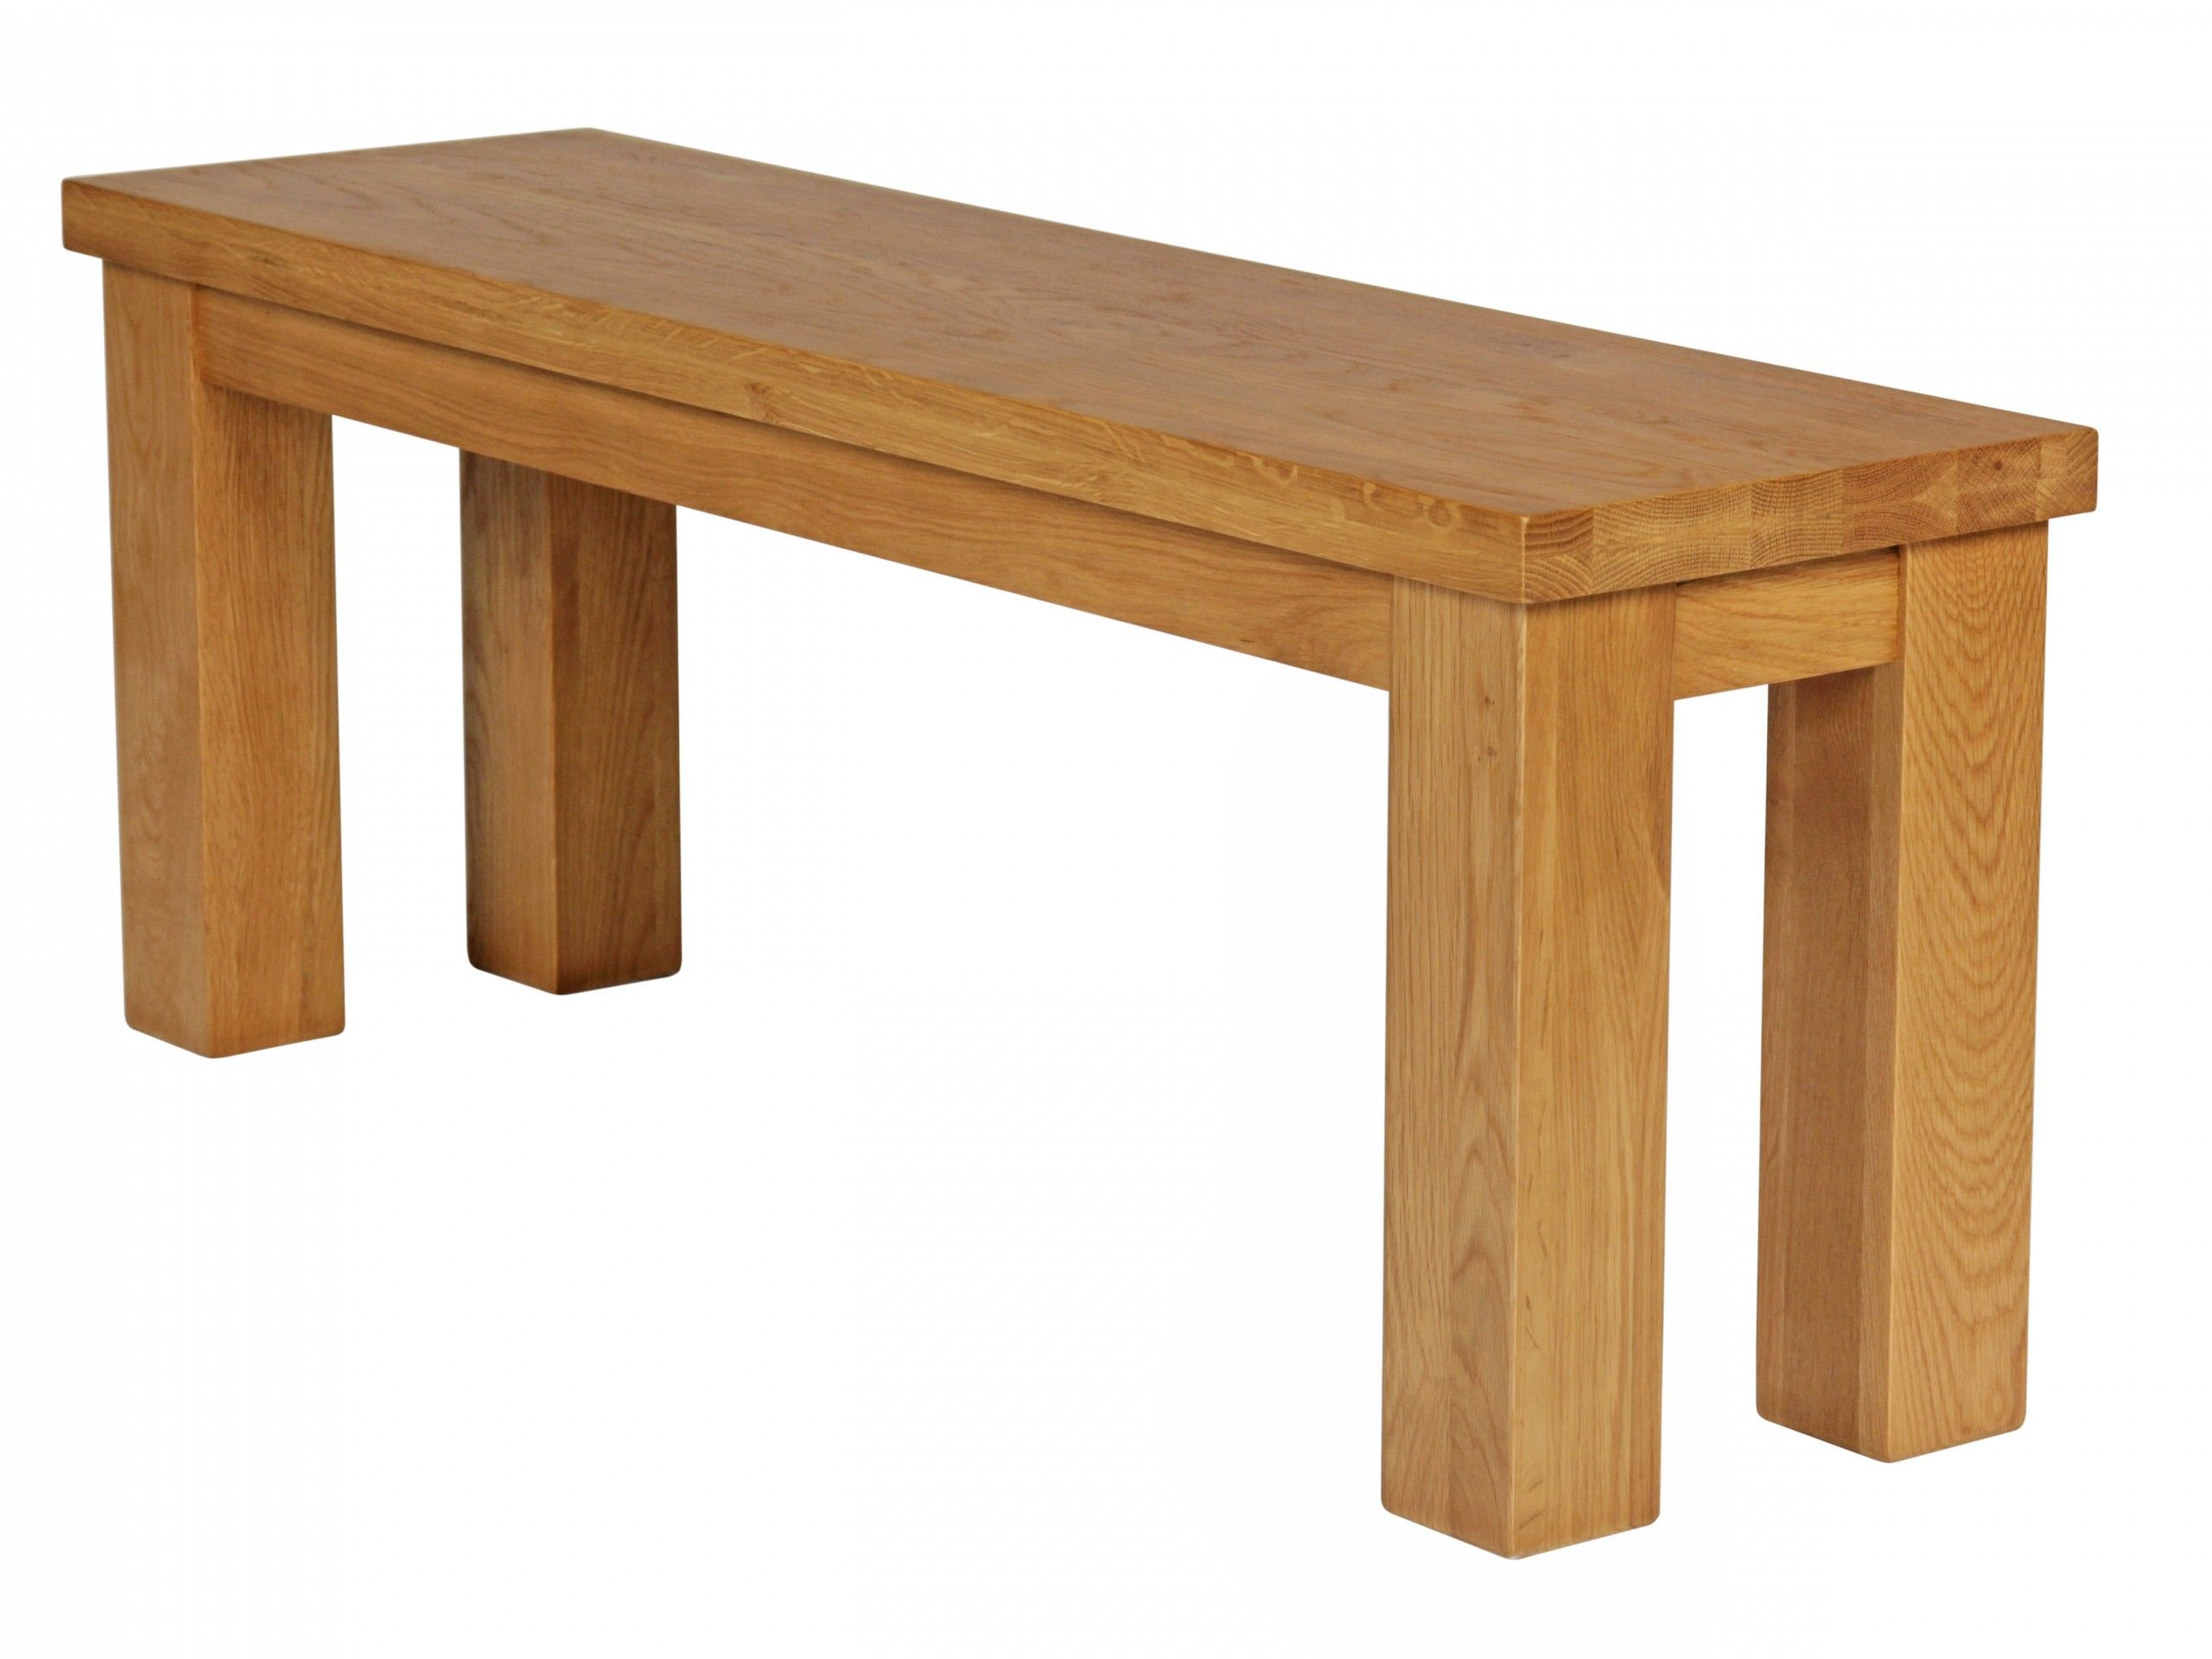 Solid American Oak 120cm Long Dining Bench From The Country Oak Range.Made  From Solid